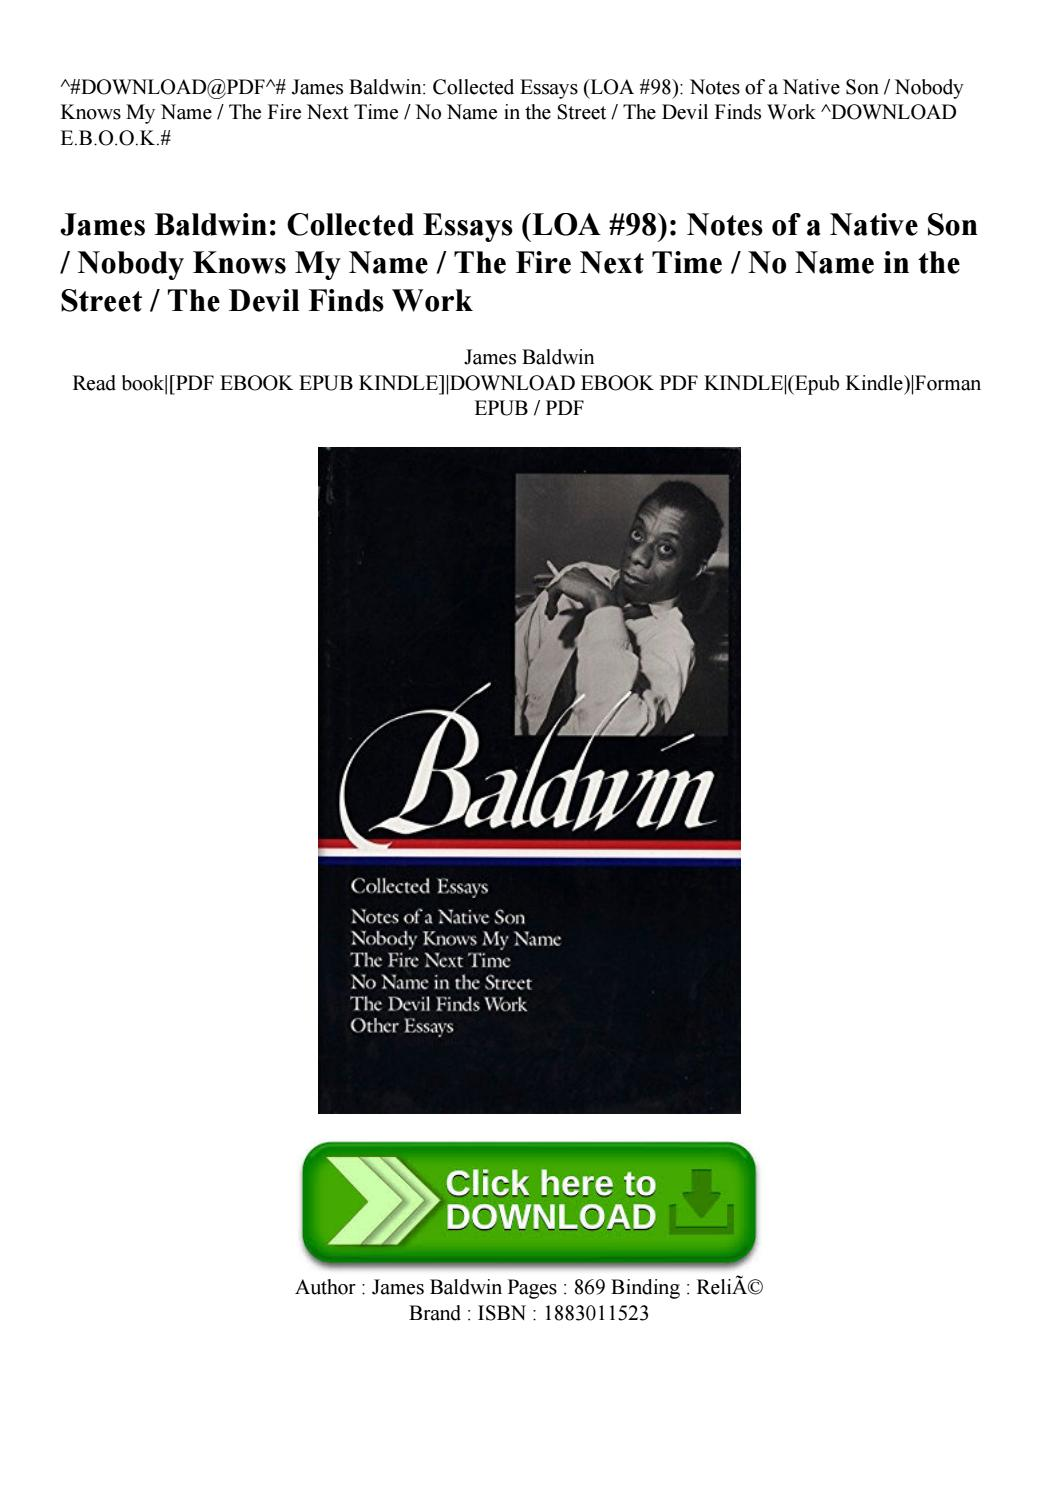 003 James Baldwin Essays Pdf Essay Example Page 1 Imposing Full